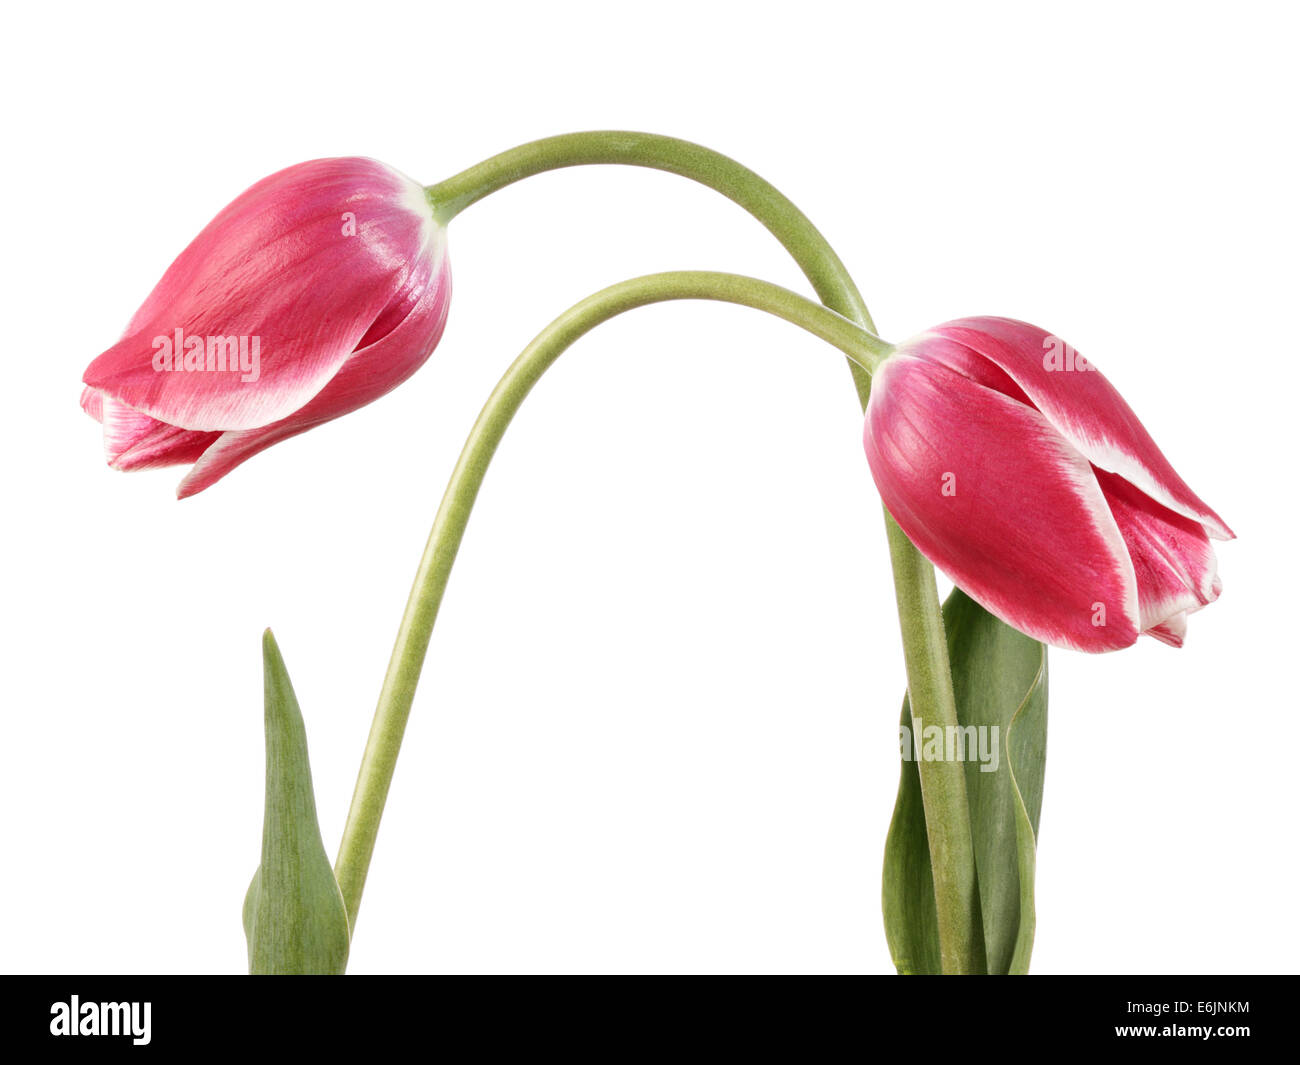 Tulips. Two pink flowers isolated on a white background - Stock Image